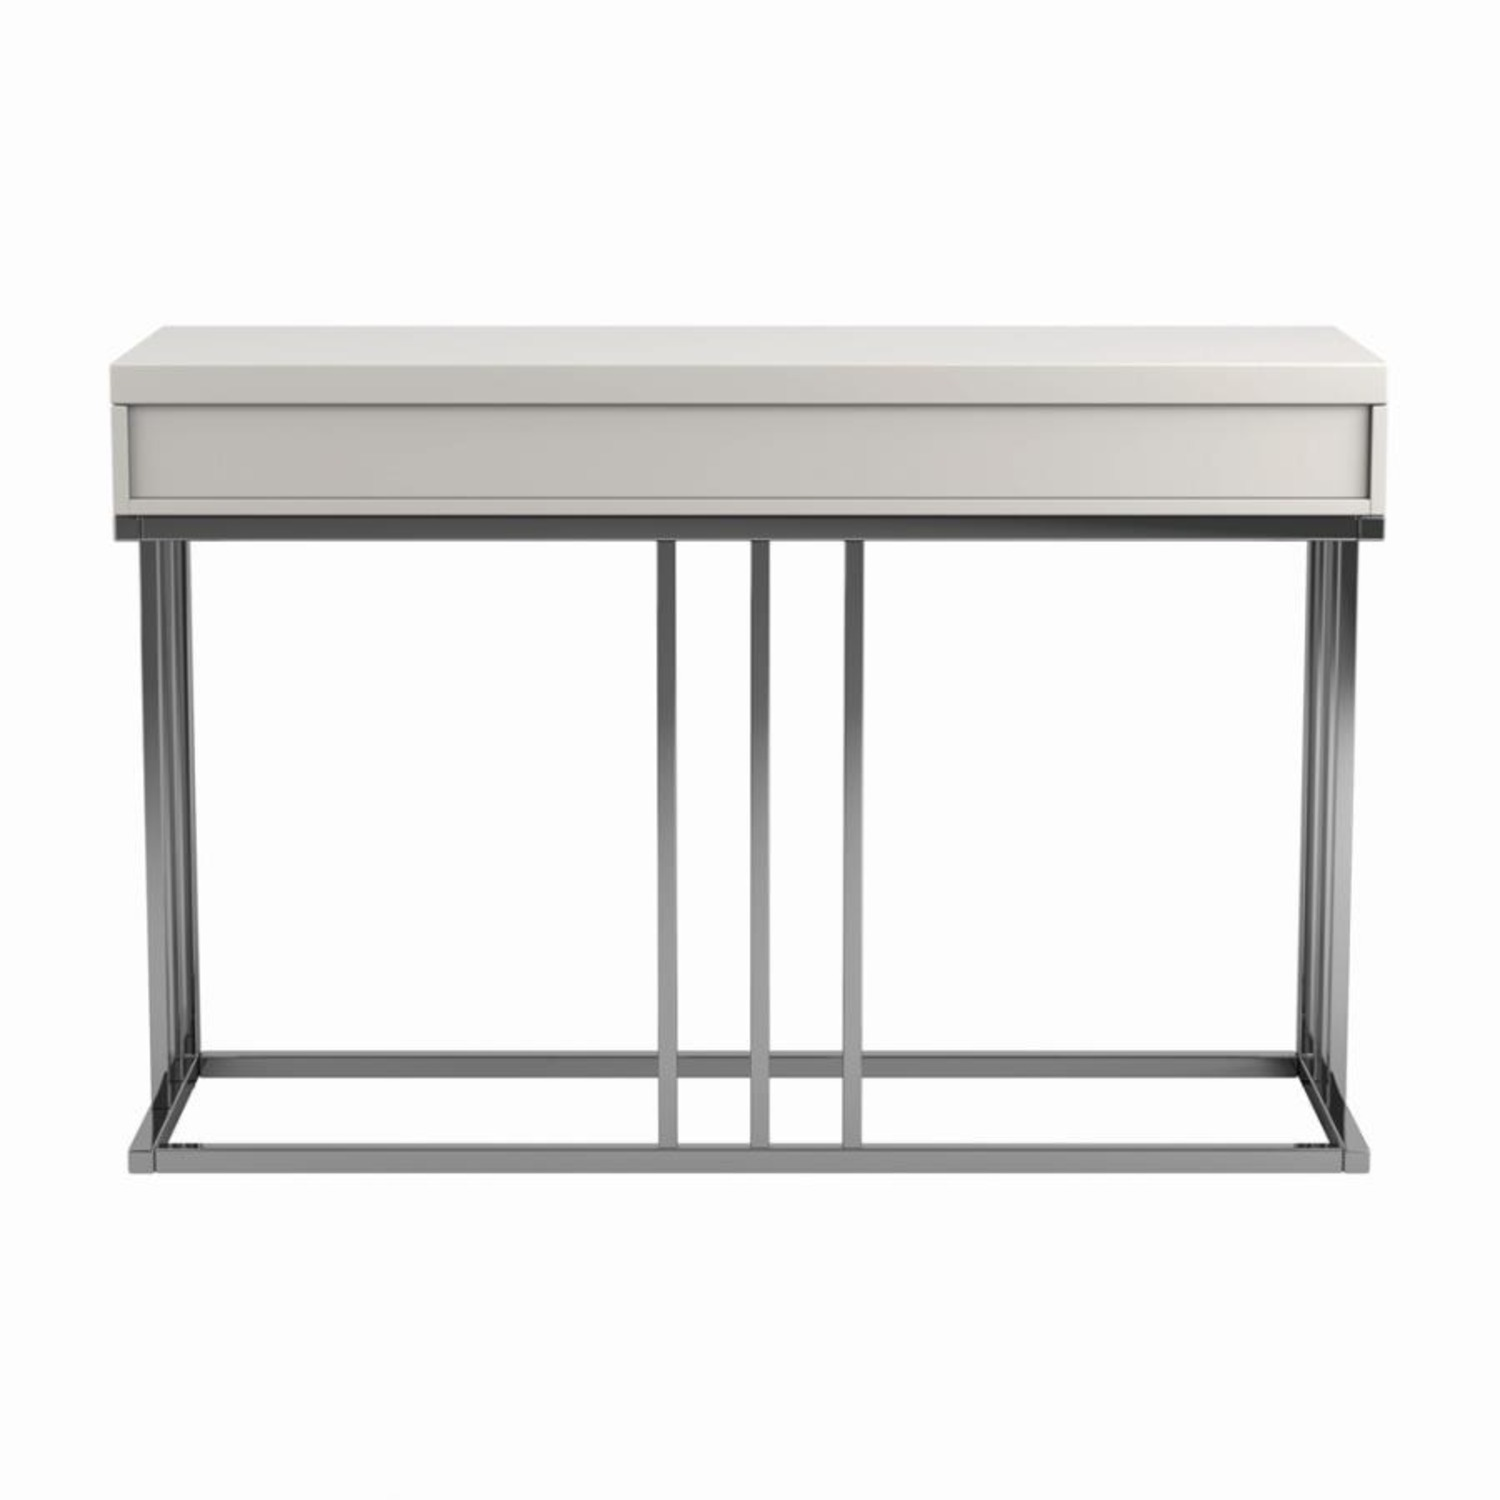 Sofa Table In Modern Linear Design - image-3